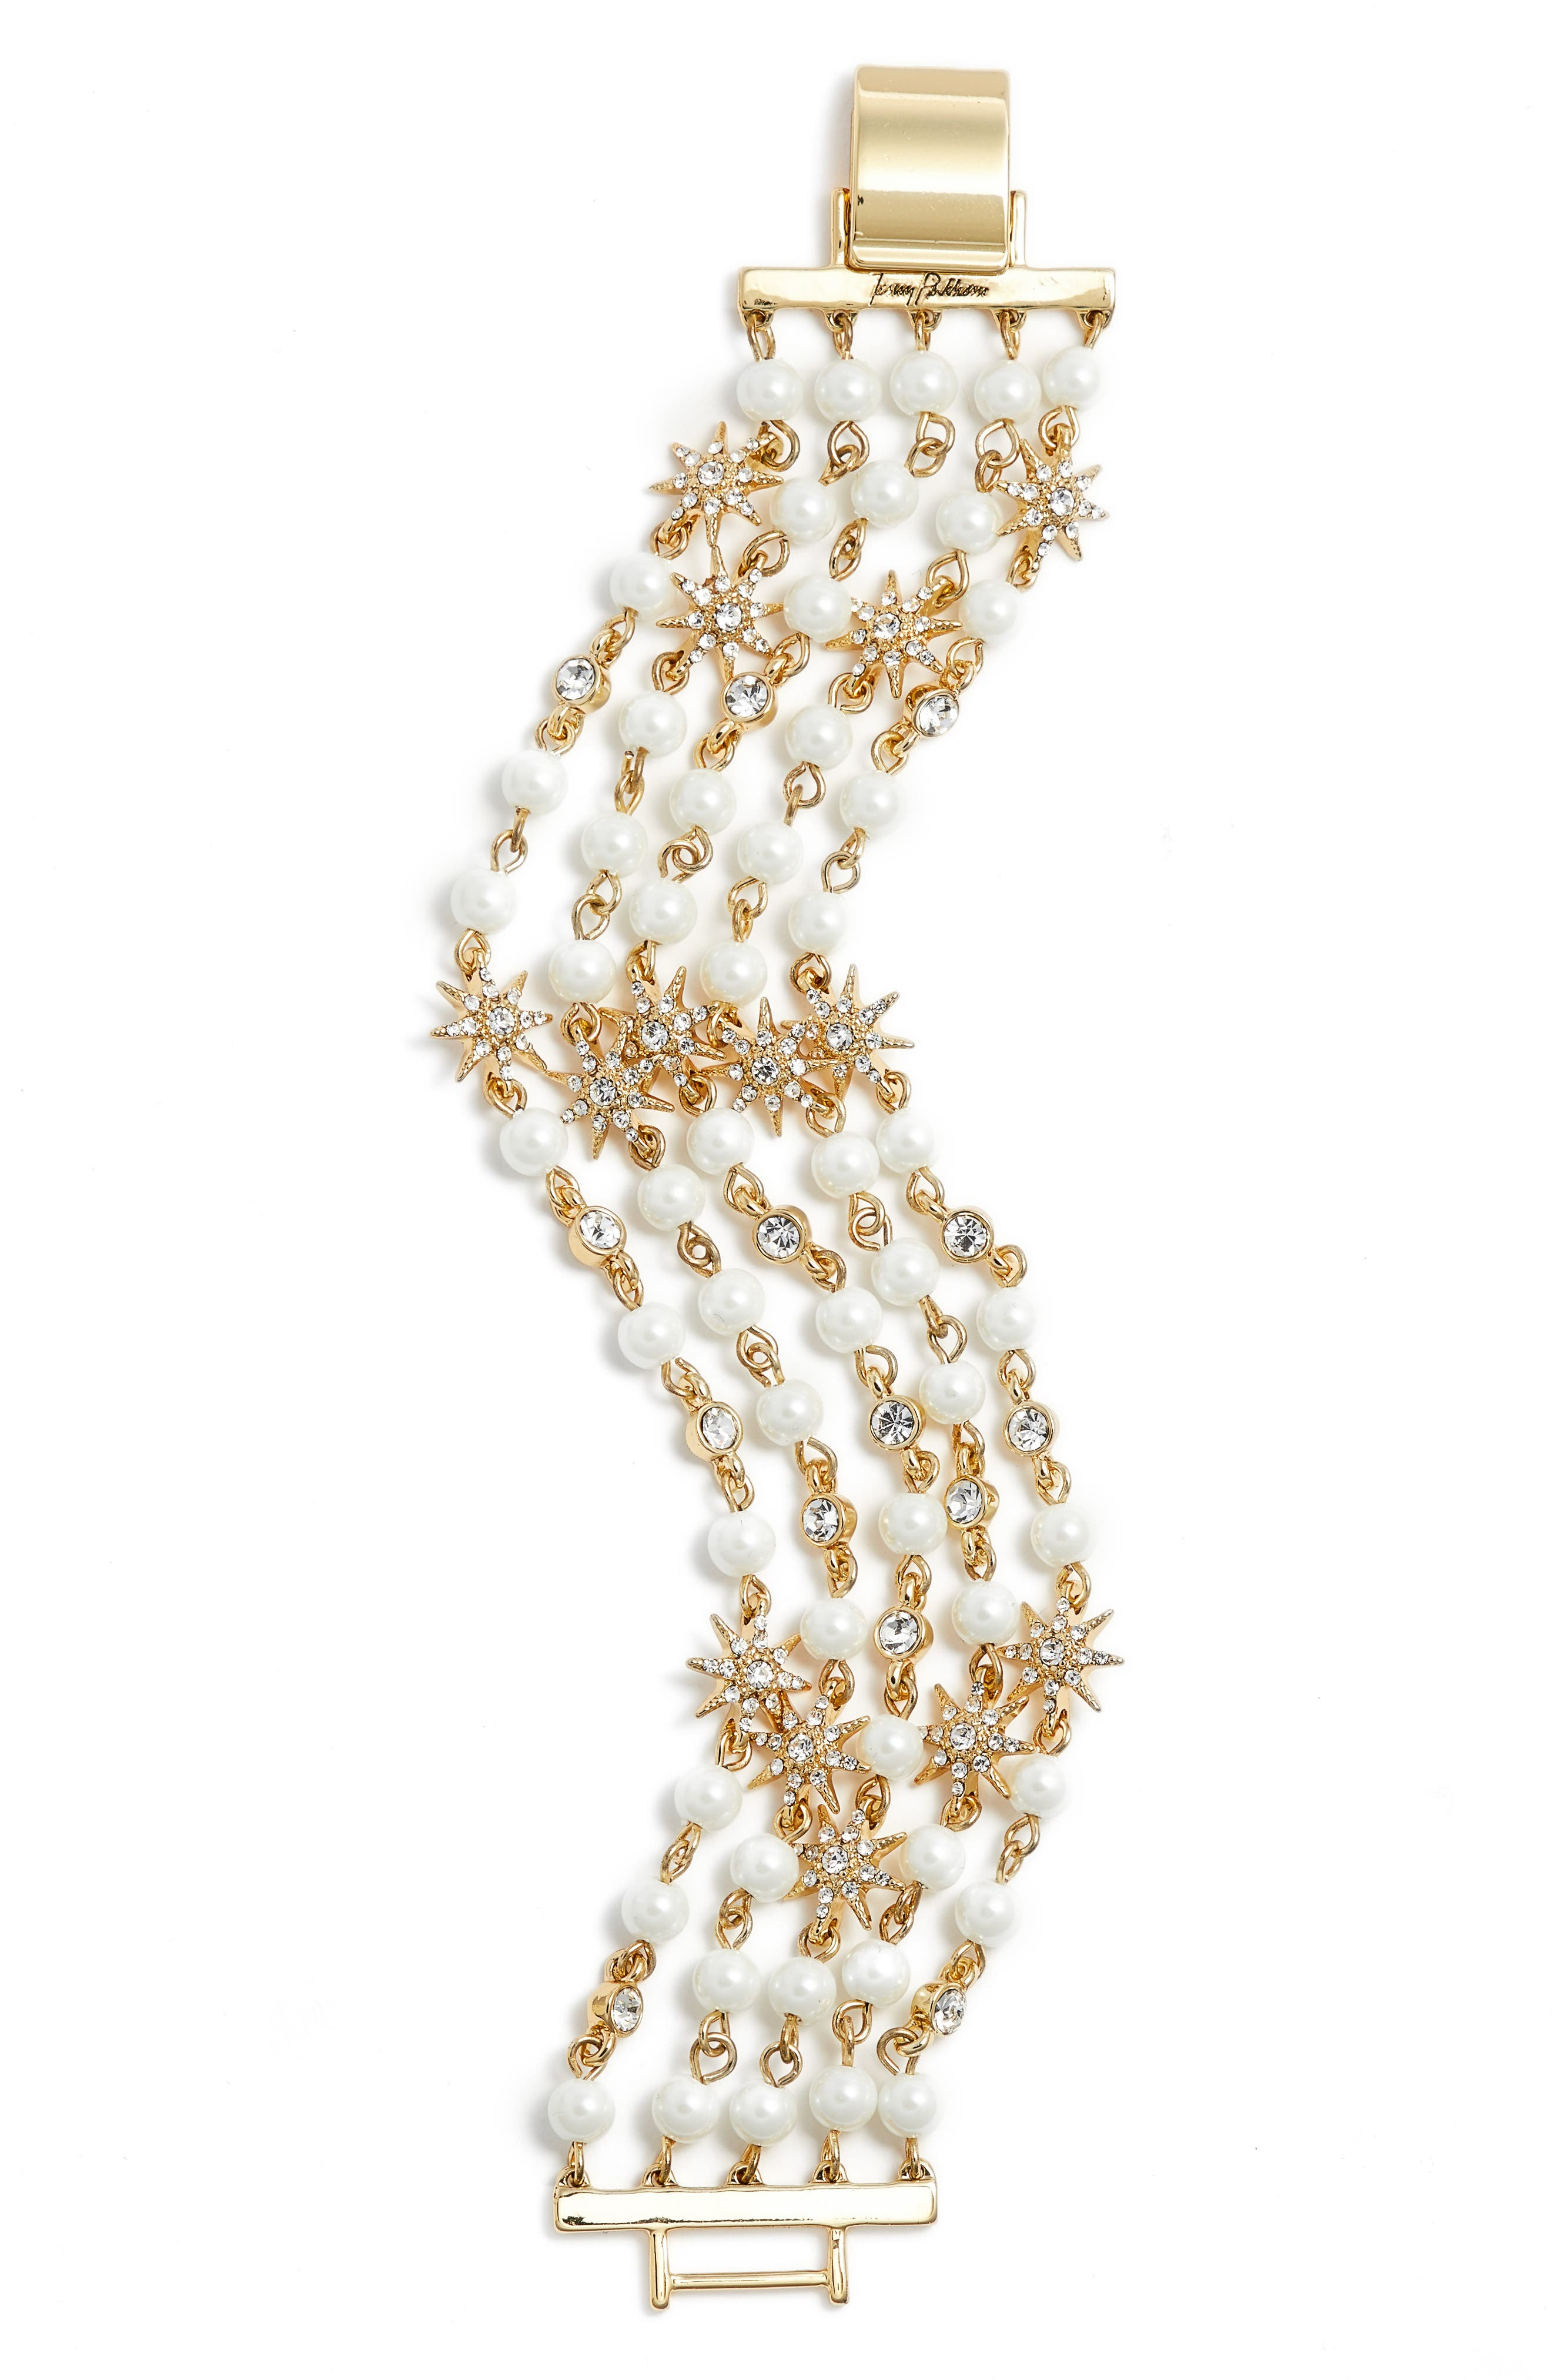 Star Beaded Multistrand Bracelet,                             Main thumbnail 1, color,                             Pearl/ Gold/ Pearl